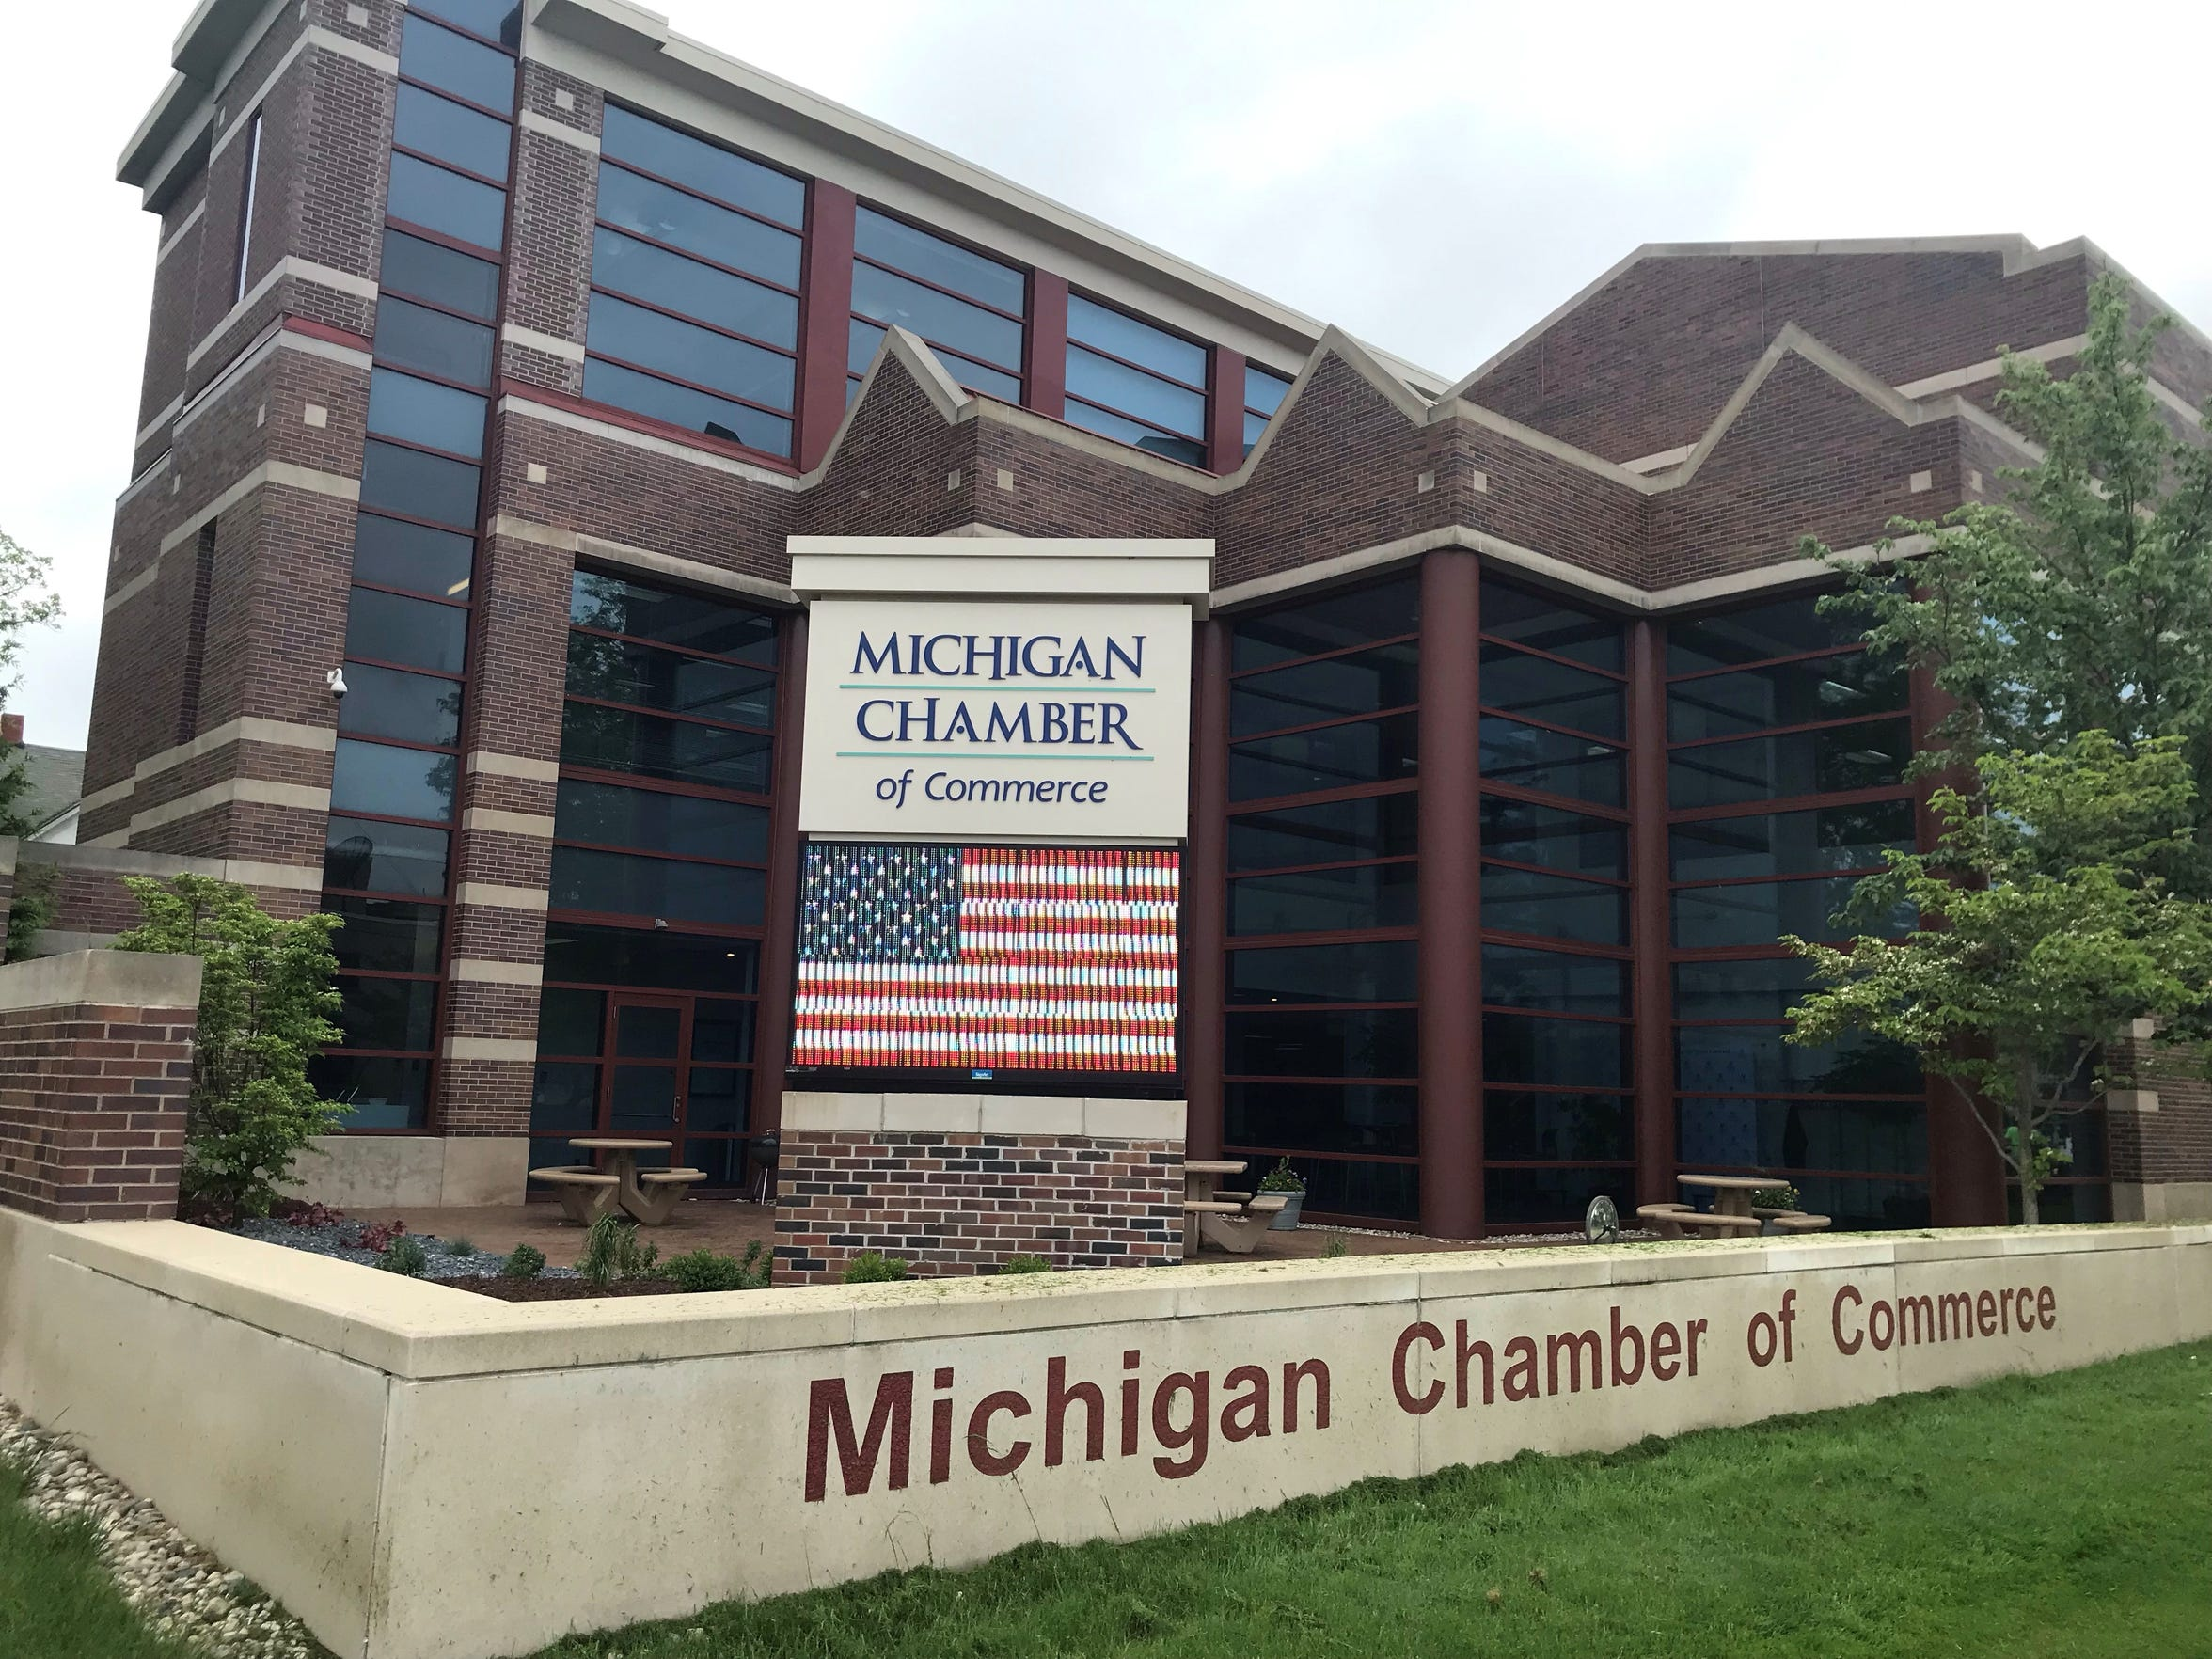 The Michigan Chamber of Commerce's headquarters in downtown Lansing